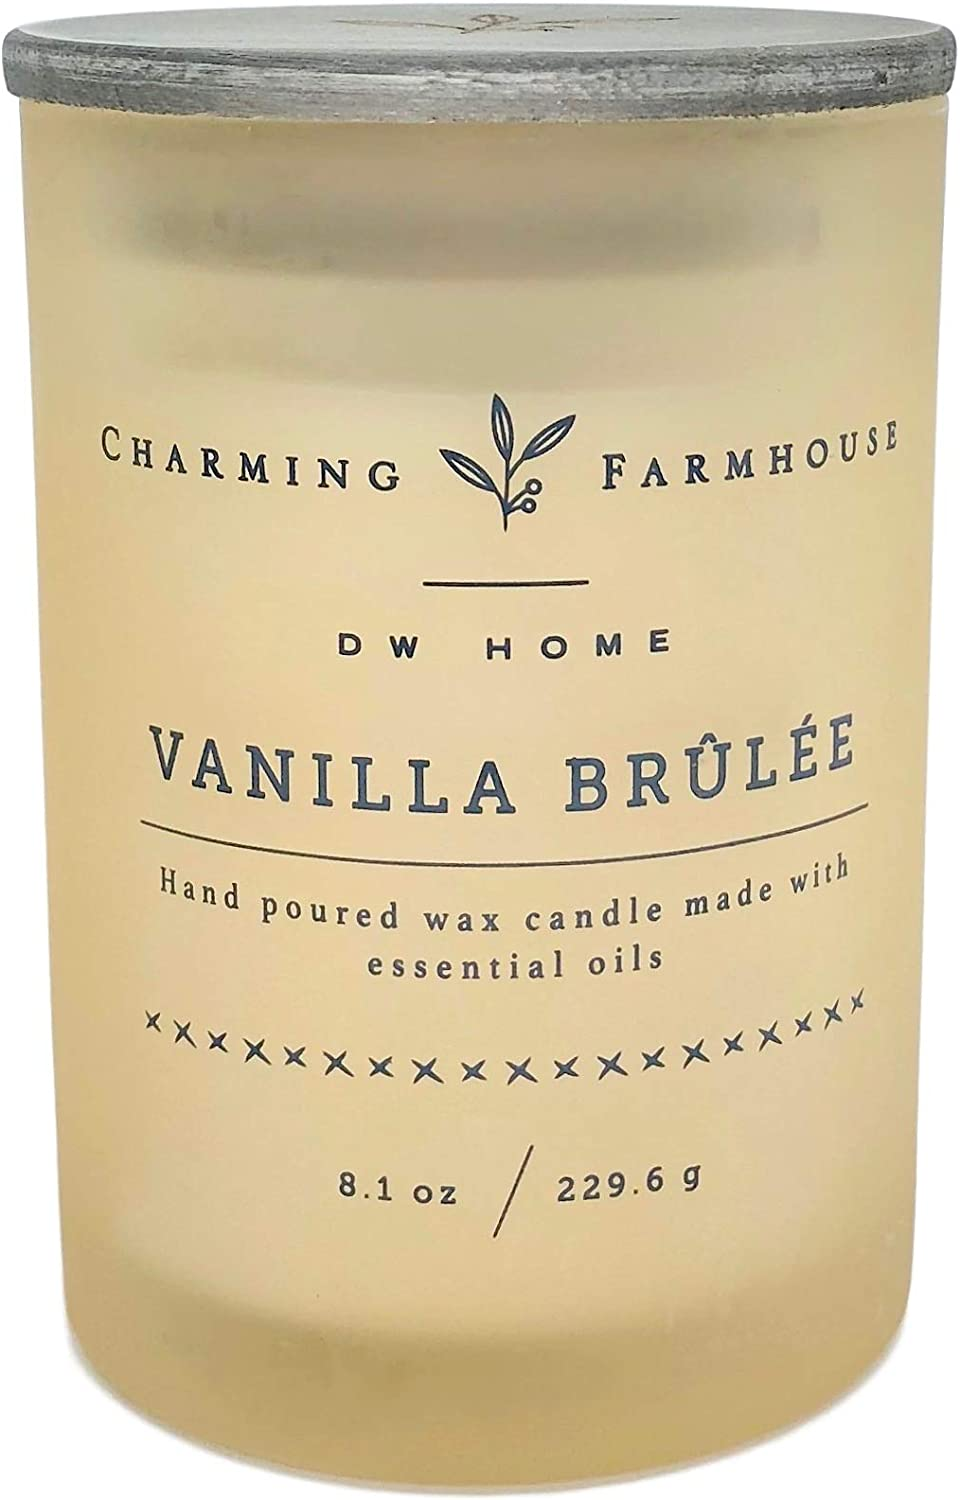 DW Home Charming Farmhouse Vanilla Brulee Scented Candle Wooden Wick